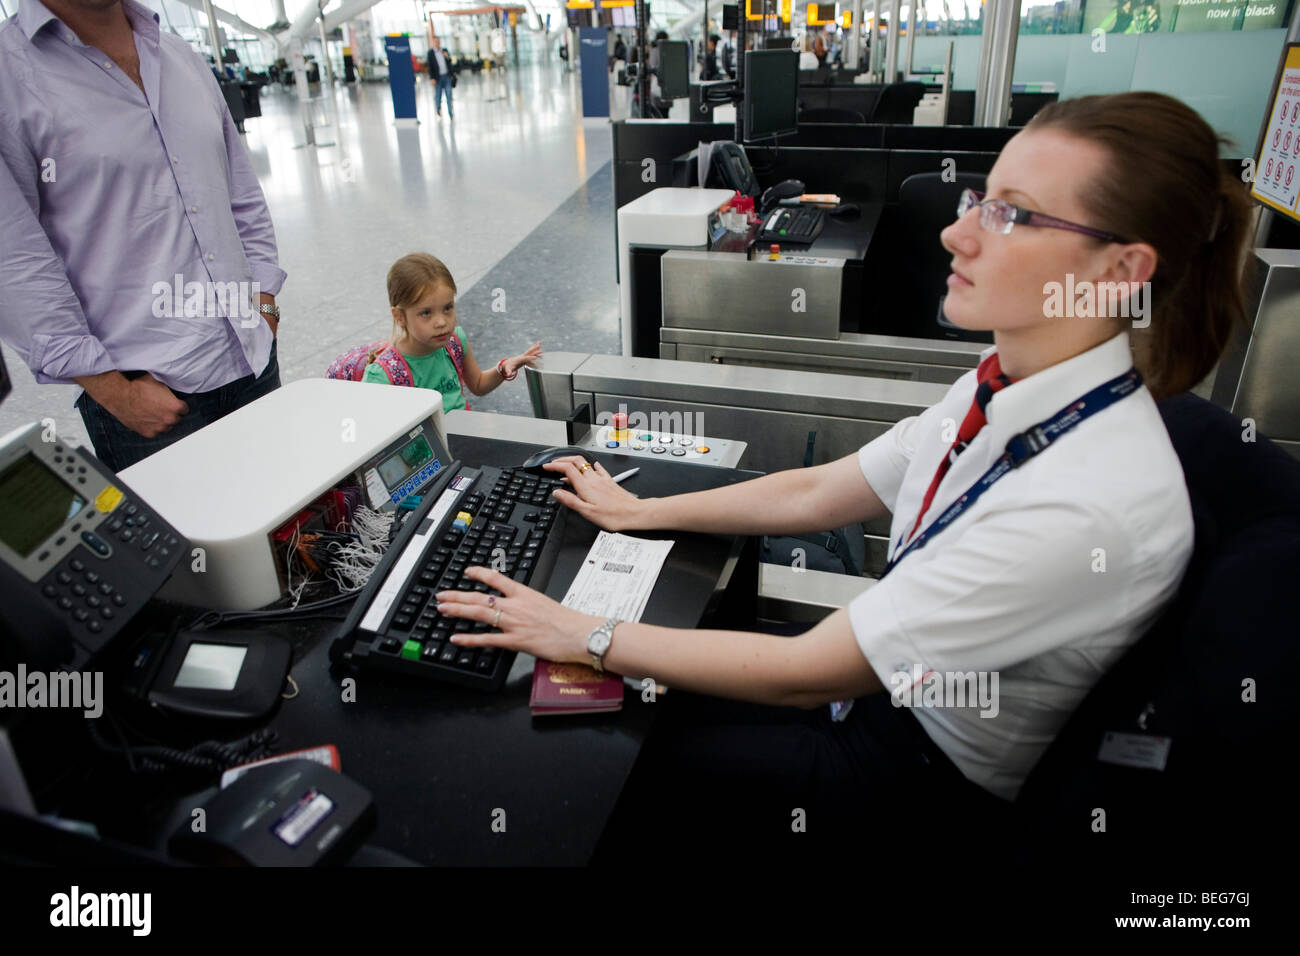 Young girl and her father check-in for a British Airways flight at Heathrow Airport's Terminal 5. - Stock Image